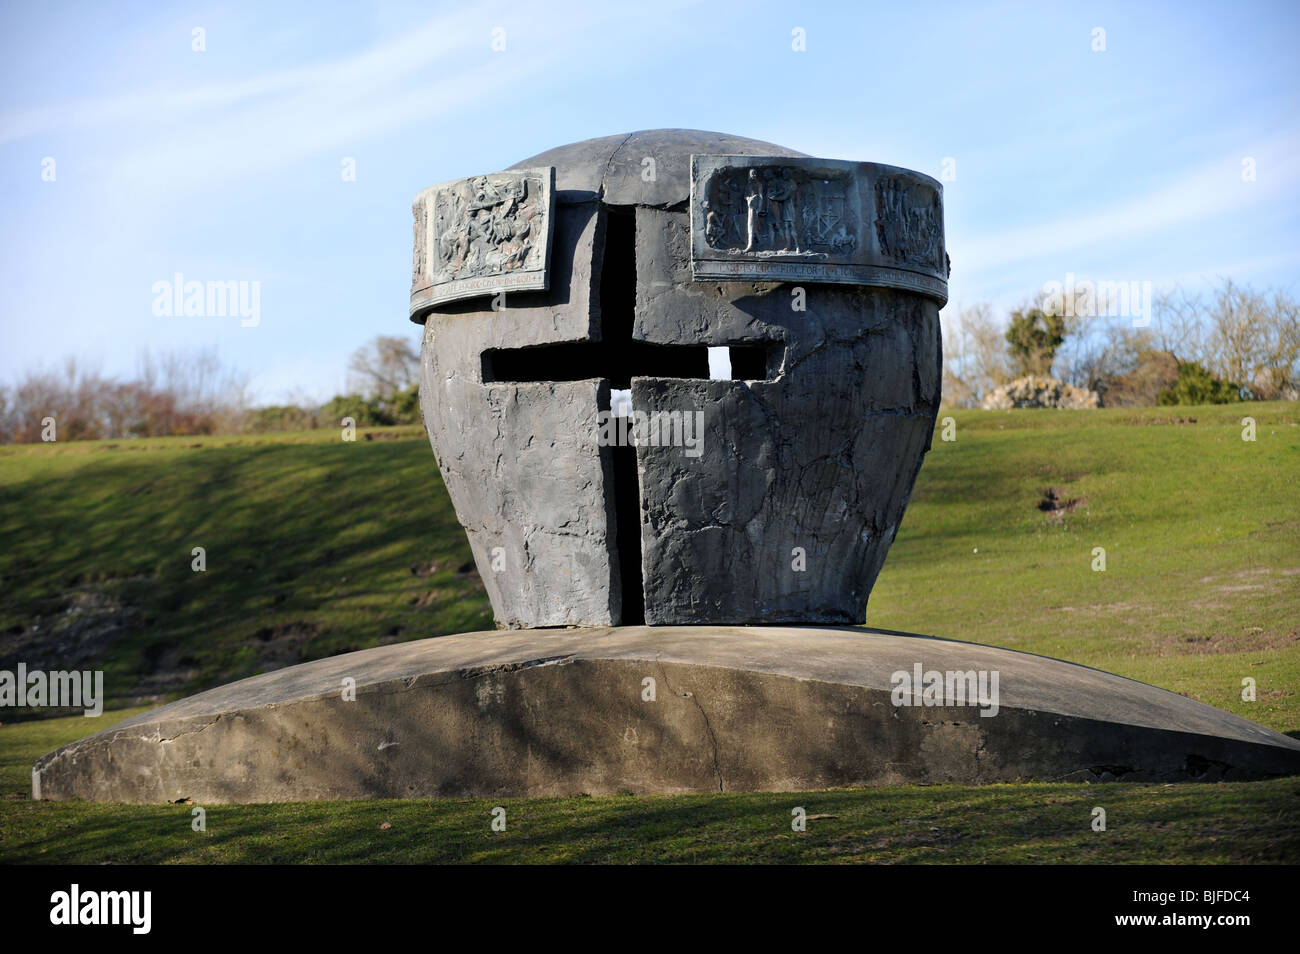 The battle monument by enzo plazzotta commemorates the battle of lewes which took place in 1264,it was given to - Stock Image